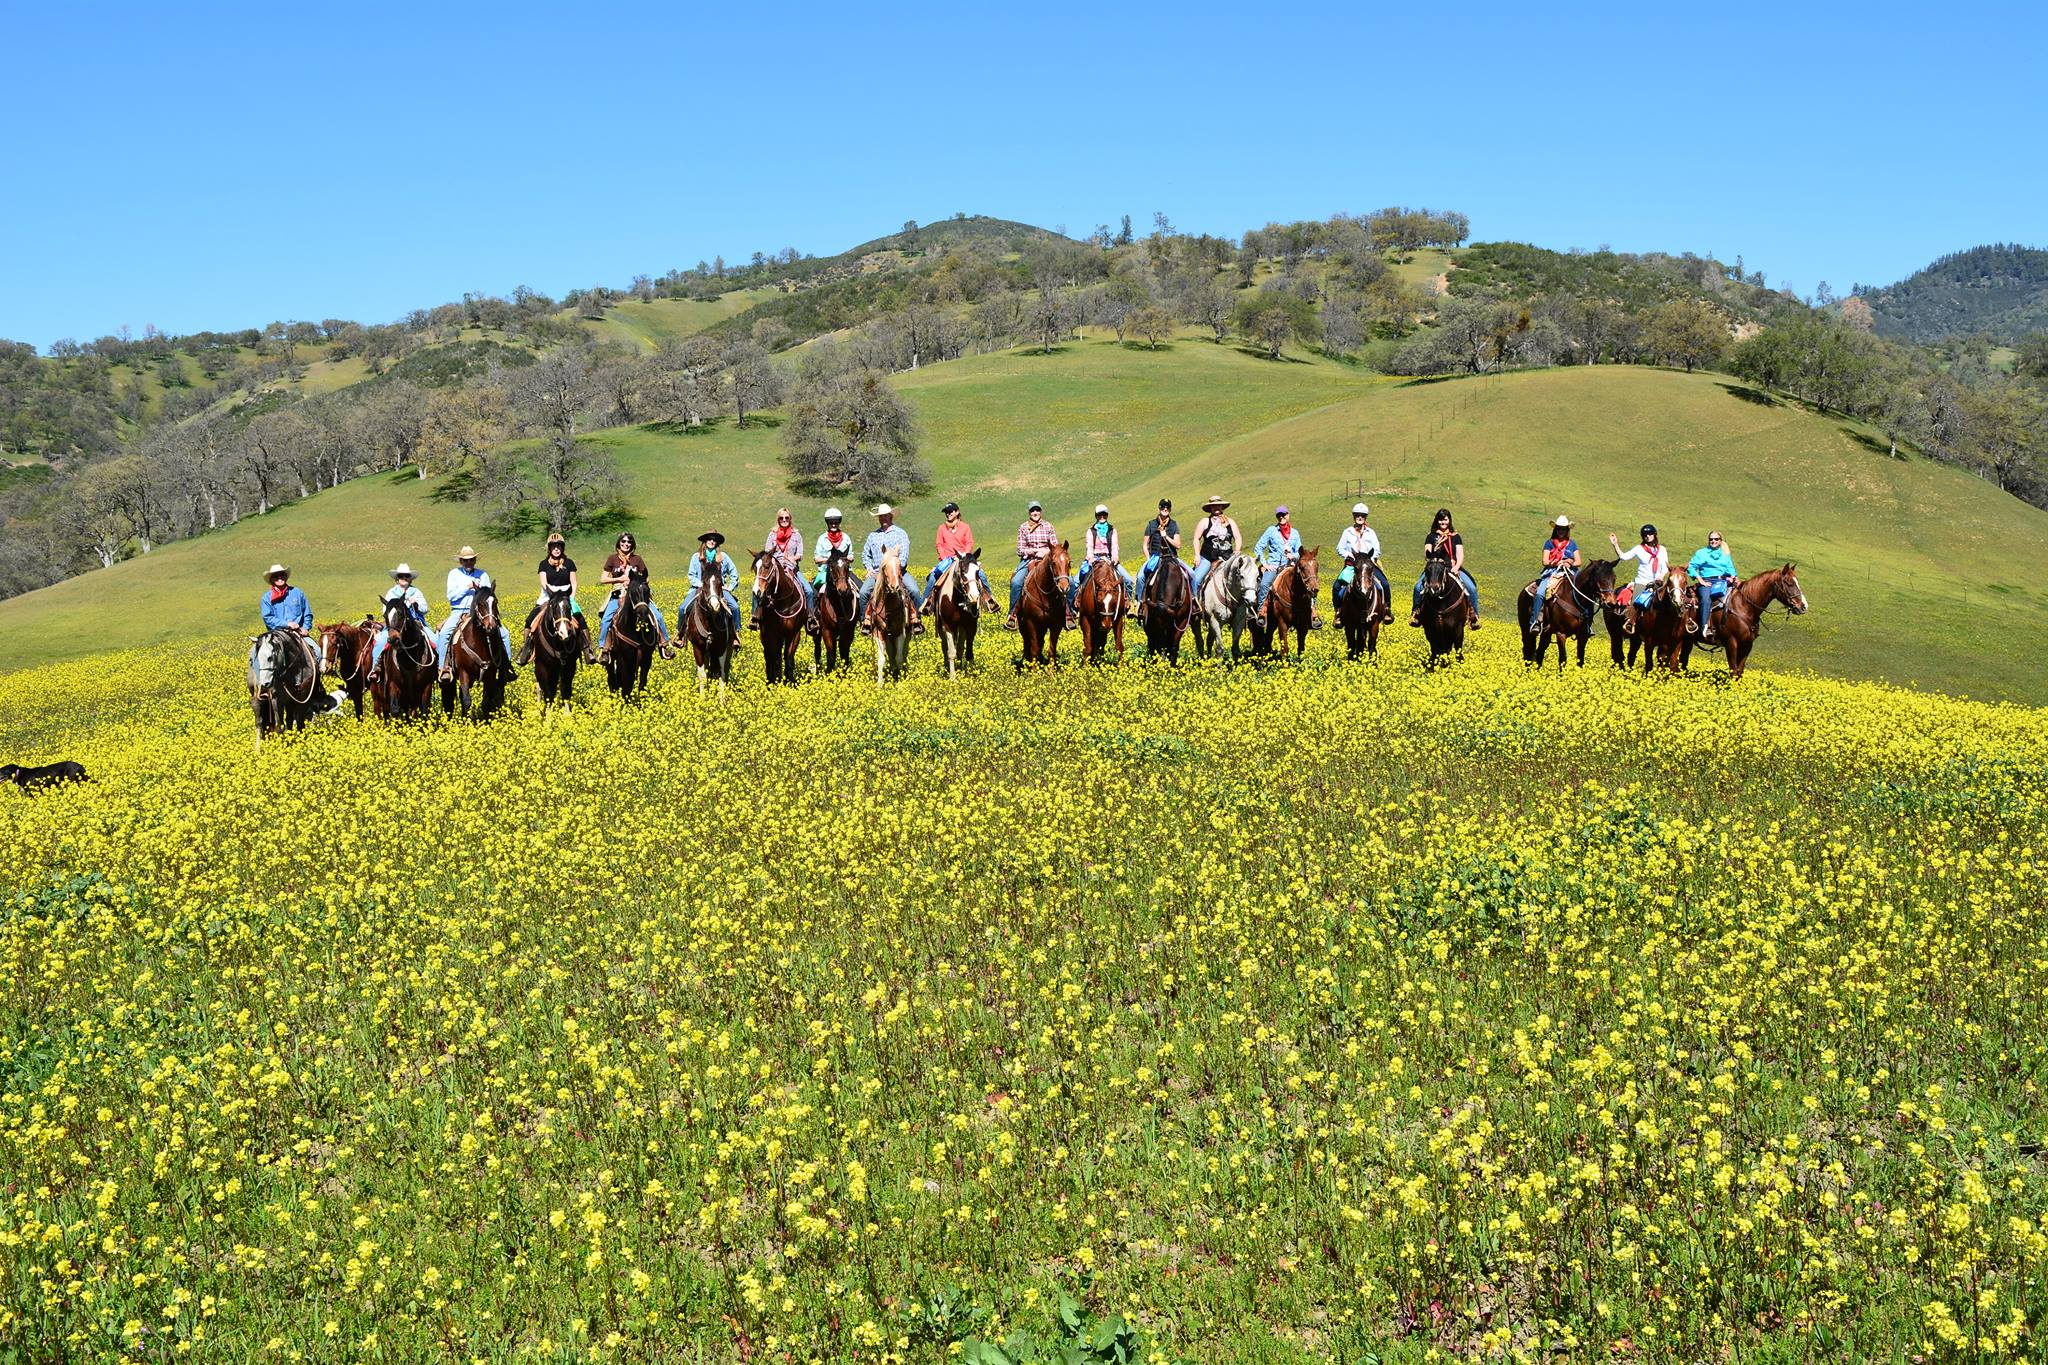 This is a wonderful group shot of all the Wild Weekend particpants on V6 Ranch horses riding on the 20,000 acre V6 cattle ranch in Parkfield, CA.  I'm the one waving.